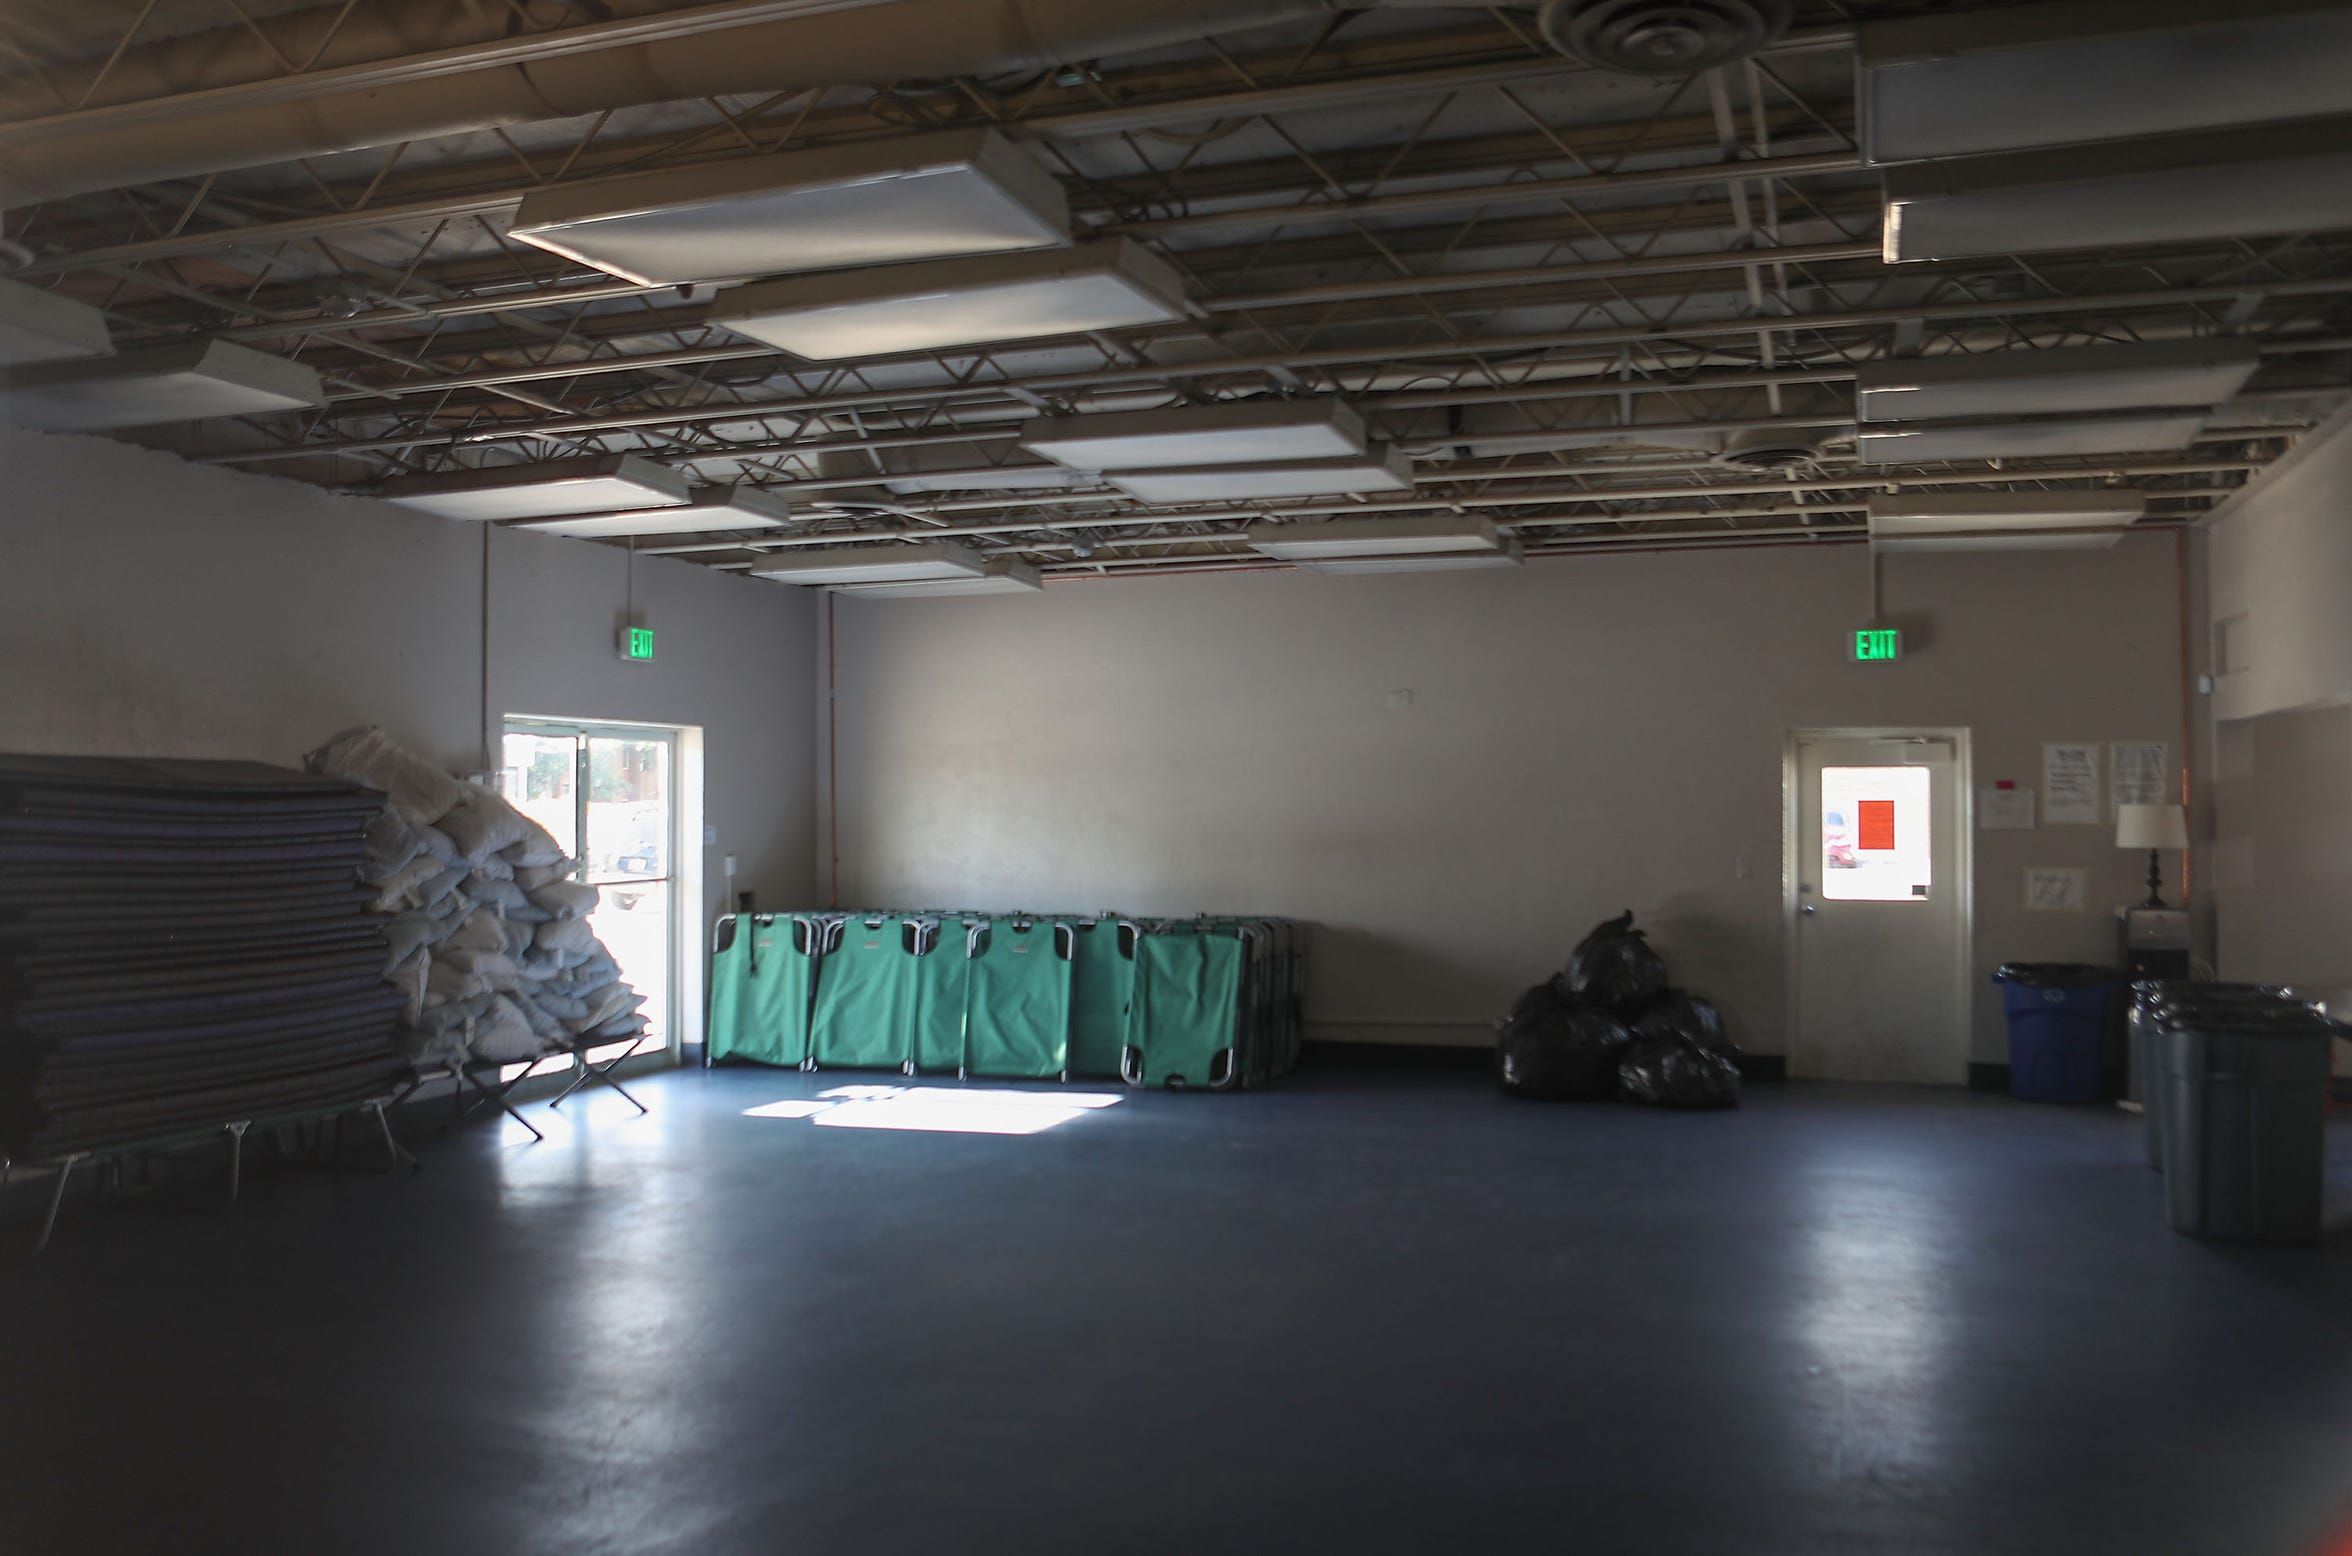 The former Palm Springs Boxing Club has been converted to an overnight shelter for the homeless, December 11, 2019.